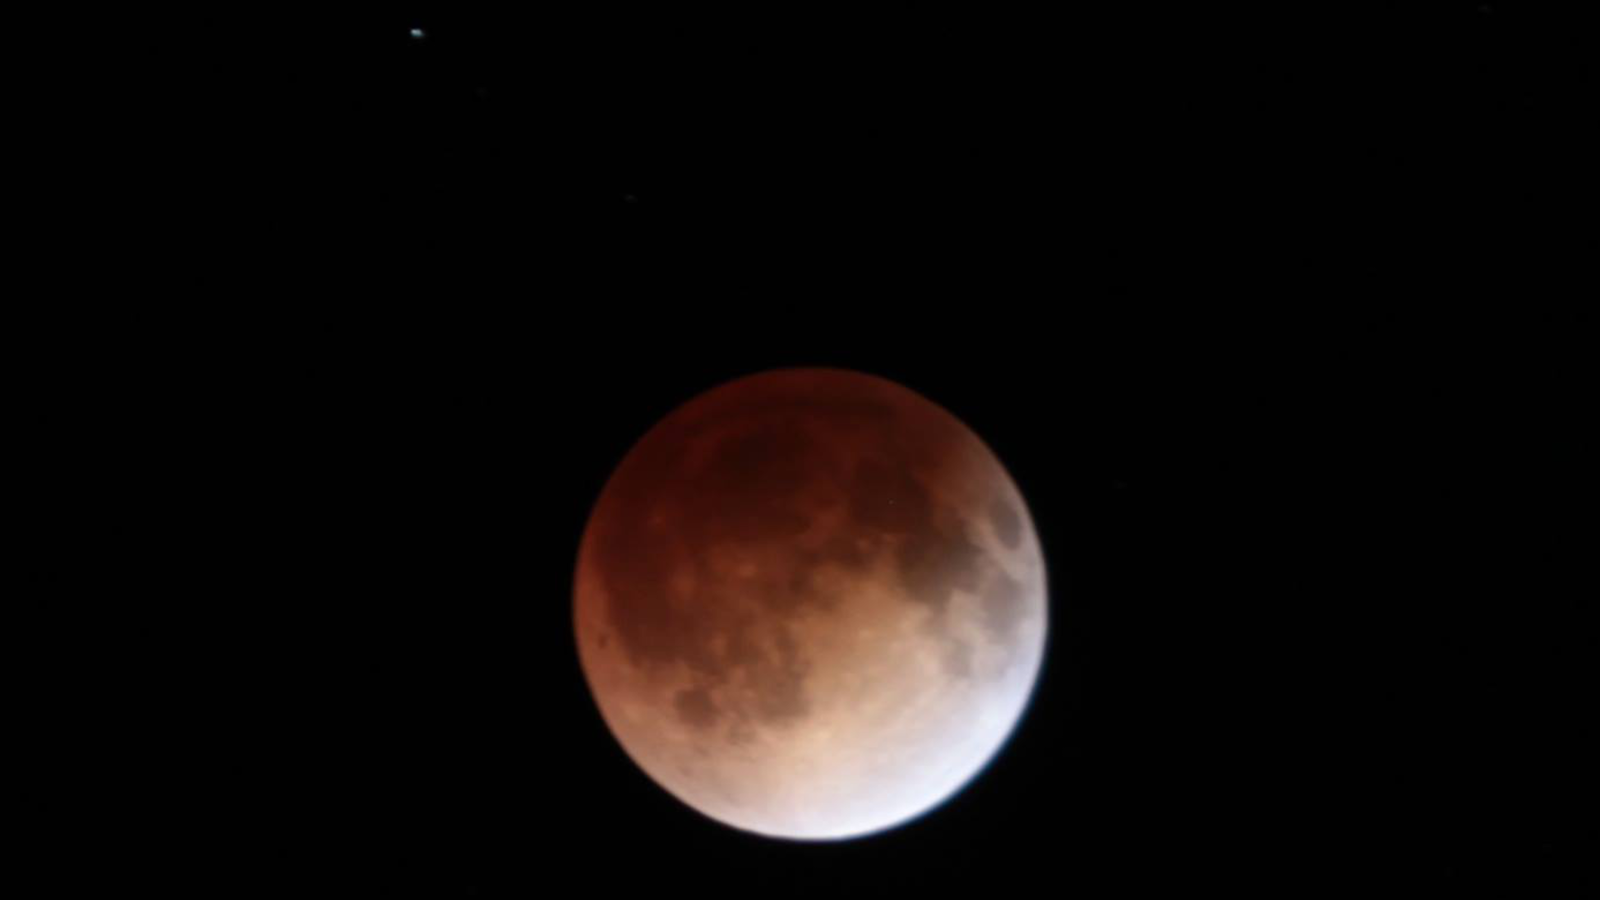 A lunar eclipse will take place on Sunday night starting at 9:33 p.m. CST. During the hour-long total eclipse which starts at 10:41 p.m. CST, the moon will look blood red. (Photo: Nick Stewart, KGAN)